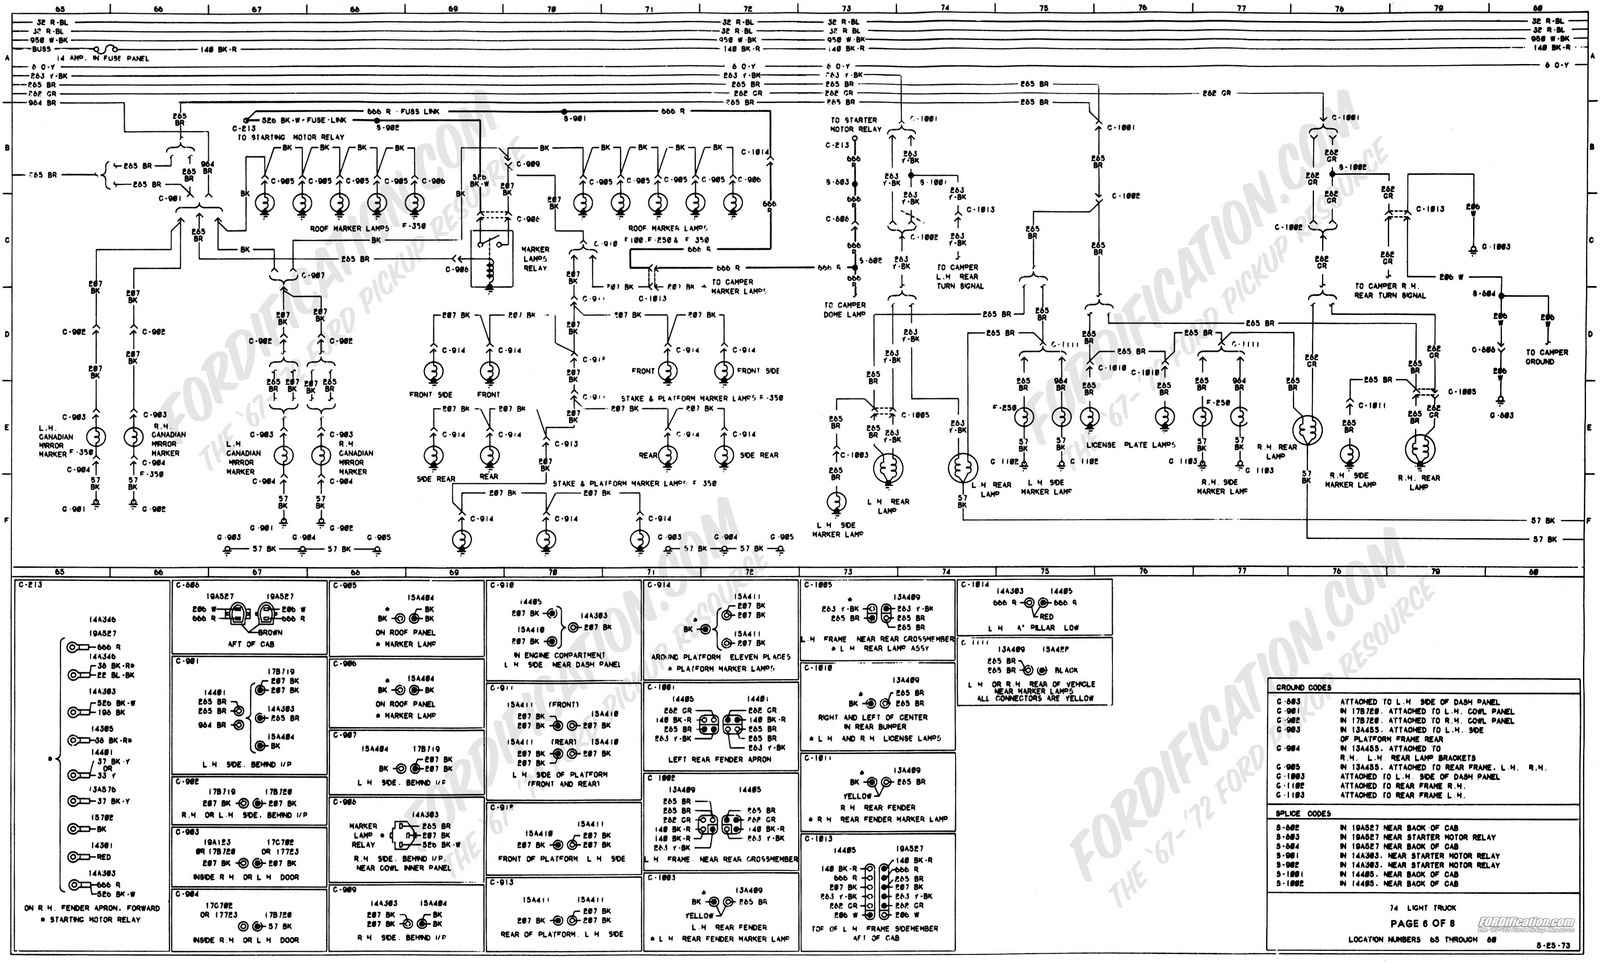 2001 Ford F350 Wiring Diagrams | Wiring Library - 2002 Ford F150 Trailer Wiring Diagram